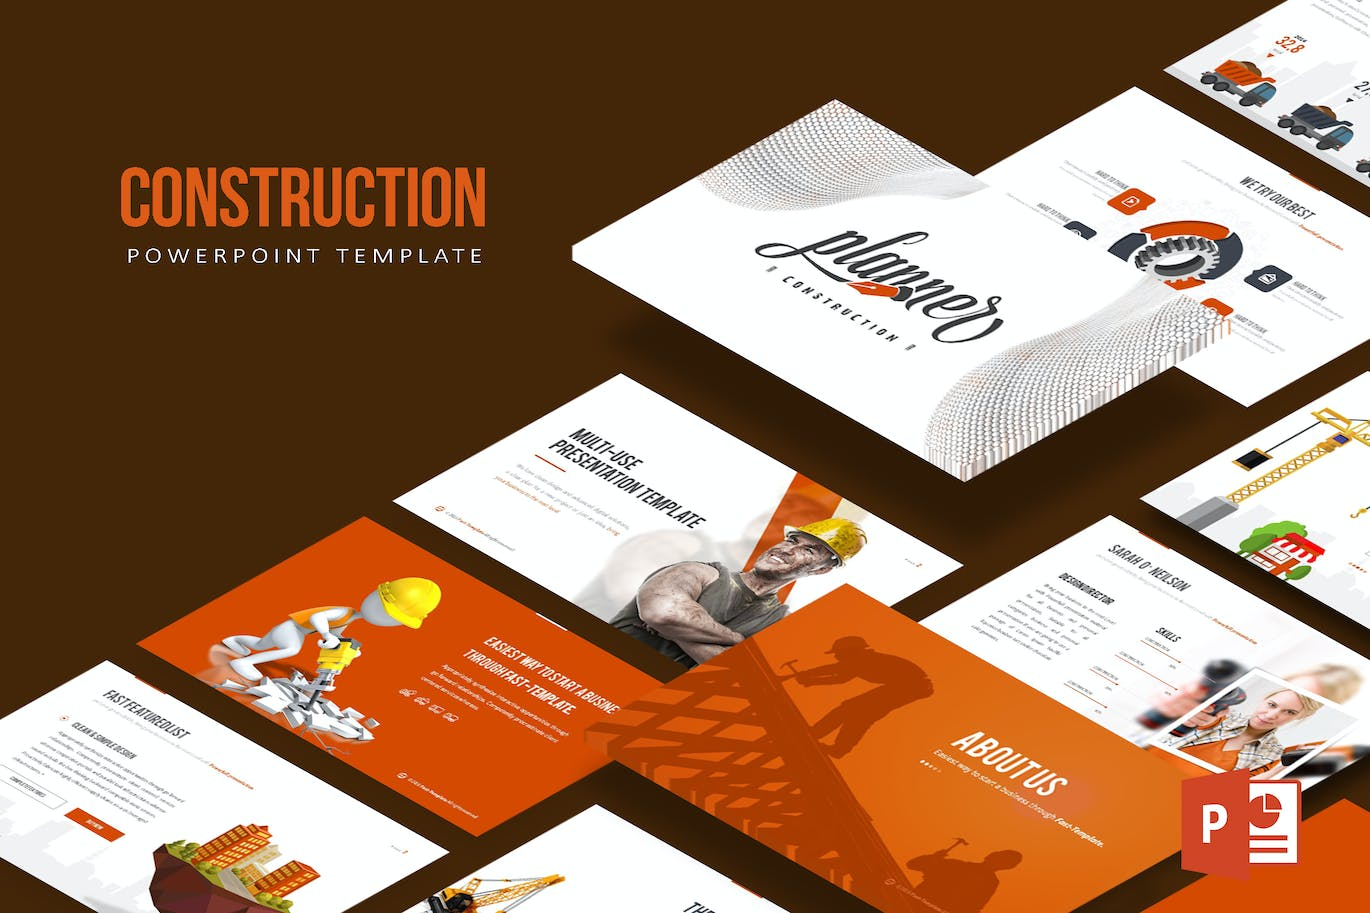 Construction Powerpoint Template By Inspirasign On Envato Elements